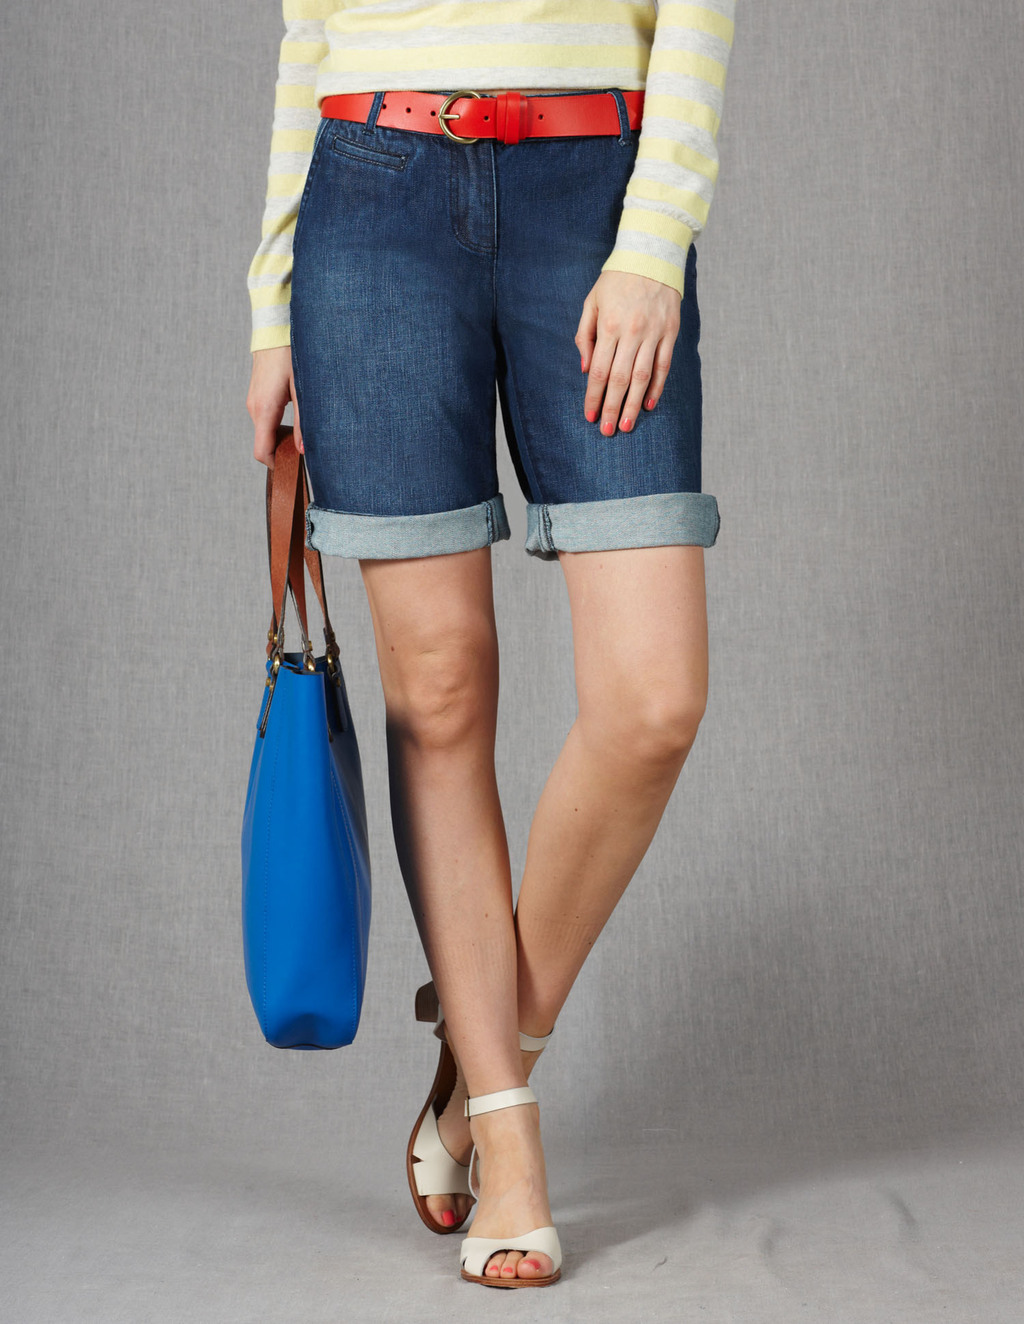 Off Duty Shorts - pattern: plain; waist detail: belted waist/tie at waist/drawstring; pocket detail: traditional 5 pocket; waist: mid/regular rise; predominant colour: denim; occasions: casual, holiday; fibres: cotton - stretch; texture group: denim; pattern type: fabric; season: s/s 2013; pattern size: standard (bottom); style: denim; length: mid thigh shorts; fit: slim leg